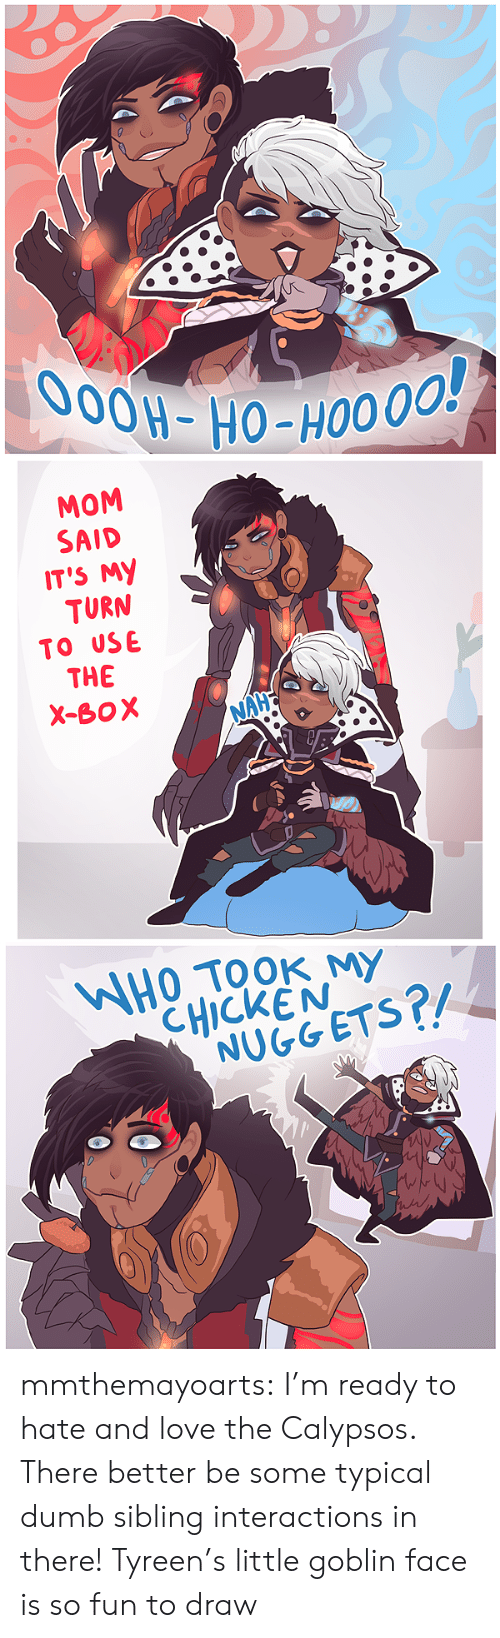 nuggets: O0OH-HO-HO0 00!   MOM  SAID  IT'S MY  TURN  TO USE  THE  X-BOX  NAHE   WHOTOOK MY  CHICKEN  NUGGETS?/ mmthemayoarts:  I'm ready to hate and love the Calypsos. There better be some typical dumb sibling interactions in there! Tyreen's little goblin face is so fun to draw